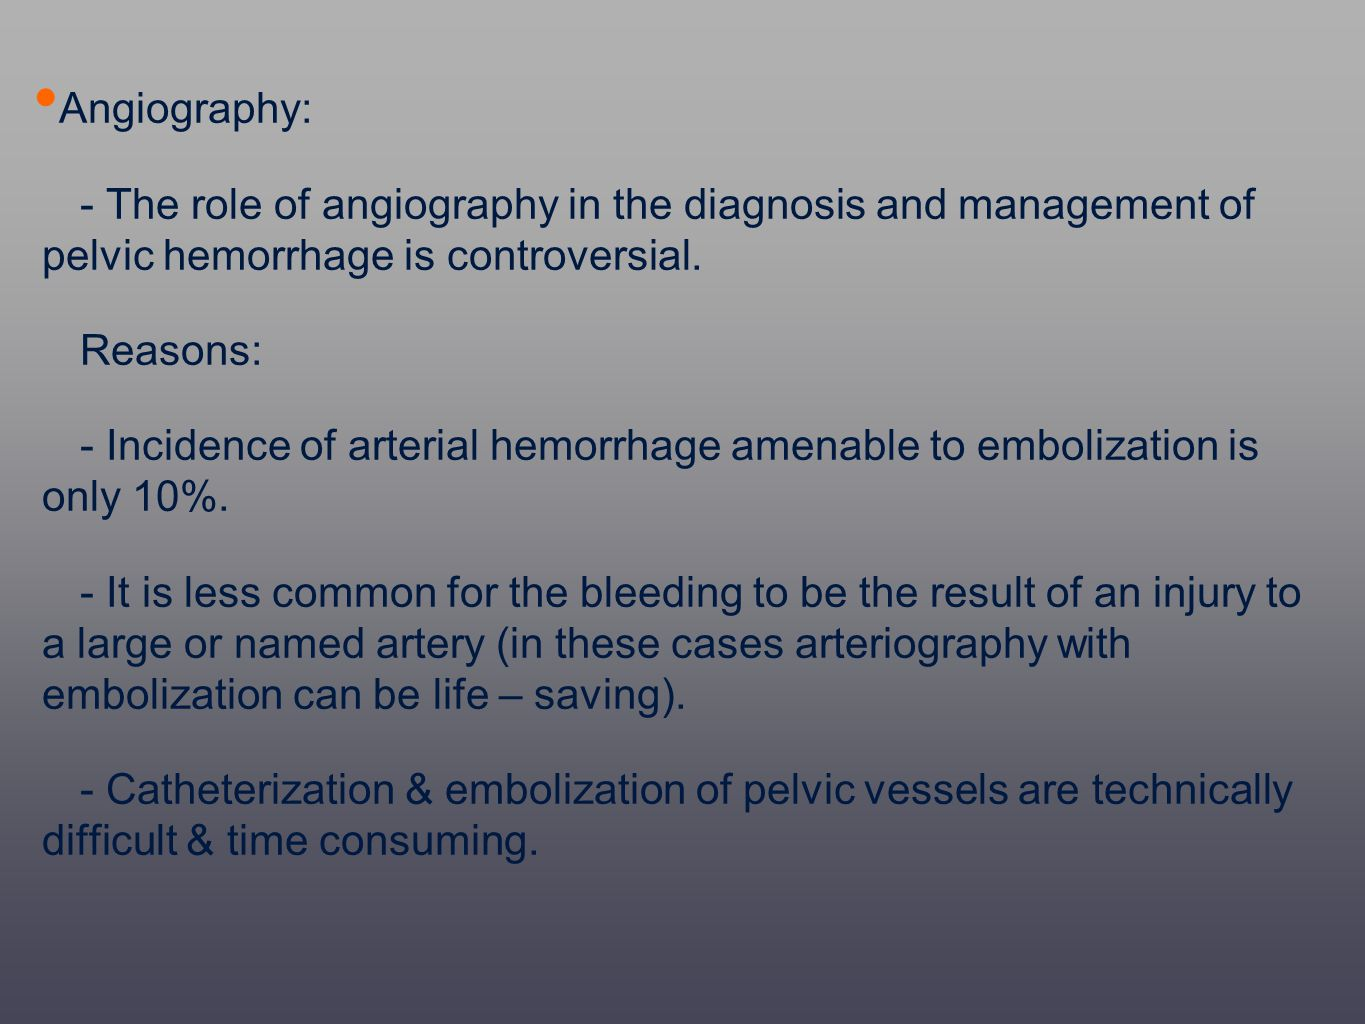 Angiography: - The role of angiography in the diagnosis and management of pelvic hemorrhage is controversial.